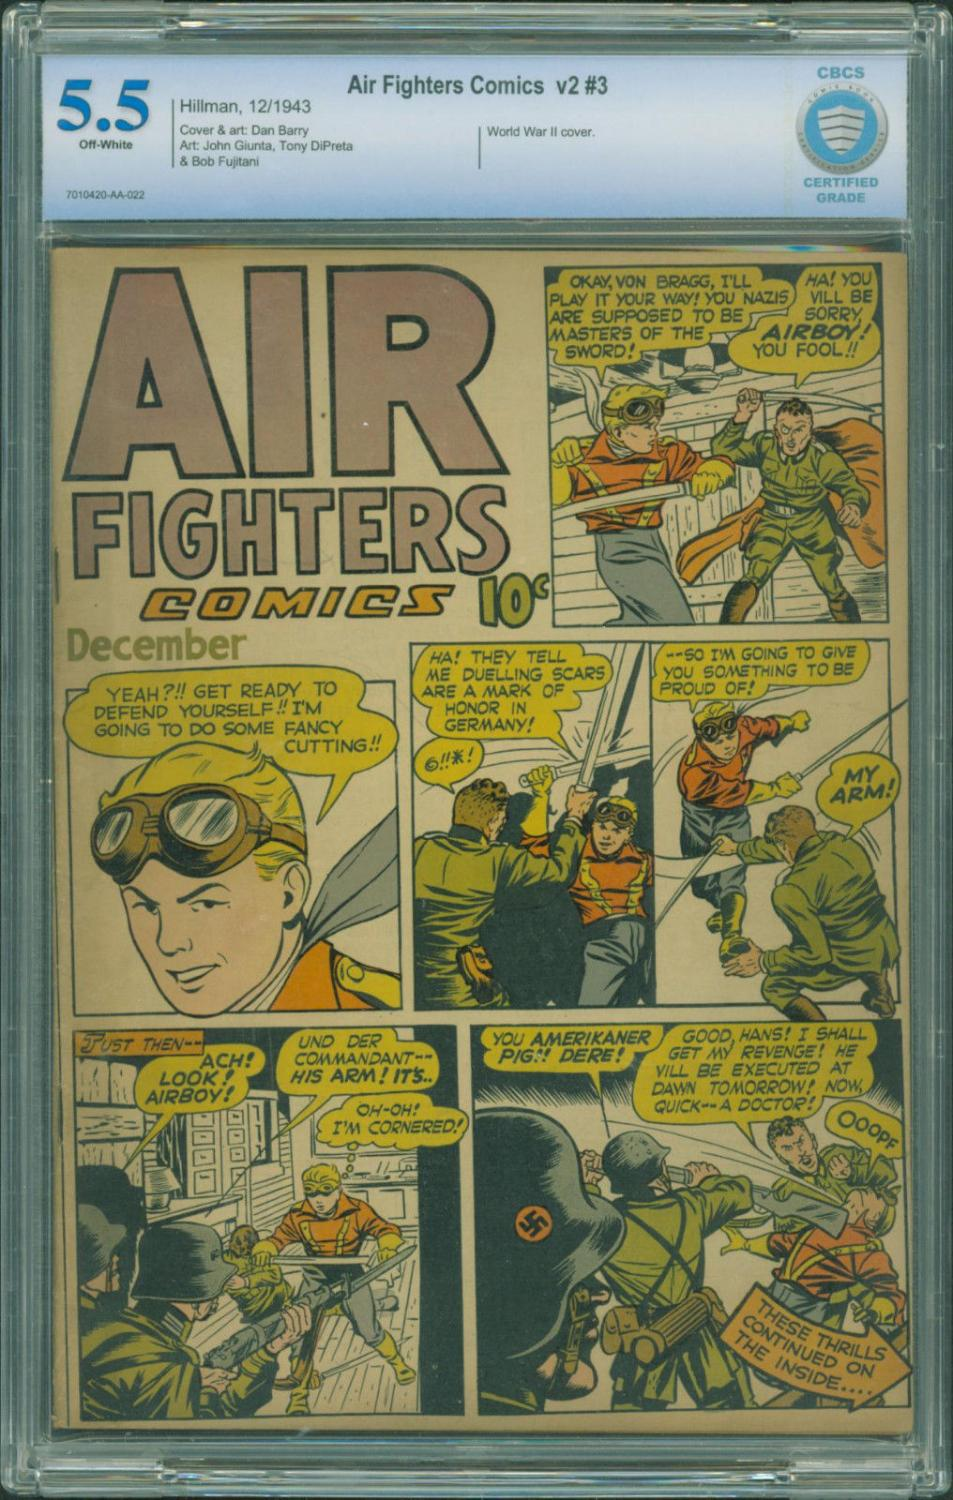 Air Fighters Vol 2 #3 CBCS 5.5 1943 Wolrd War II Hillman Nazi cover Airboy Comic Book Softcover